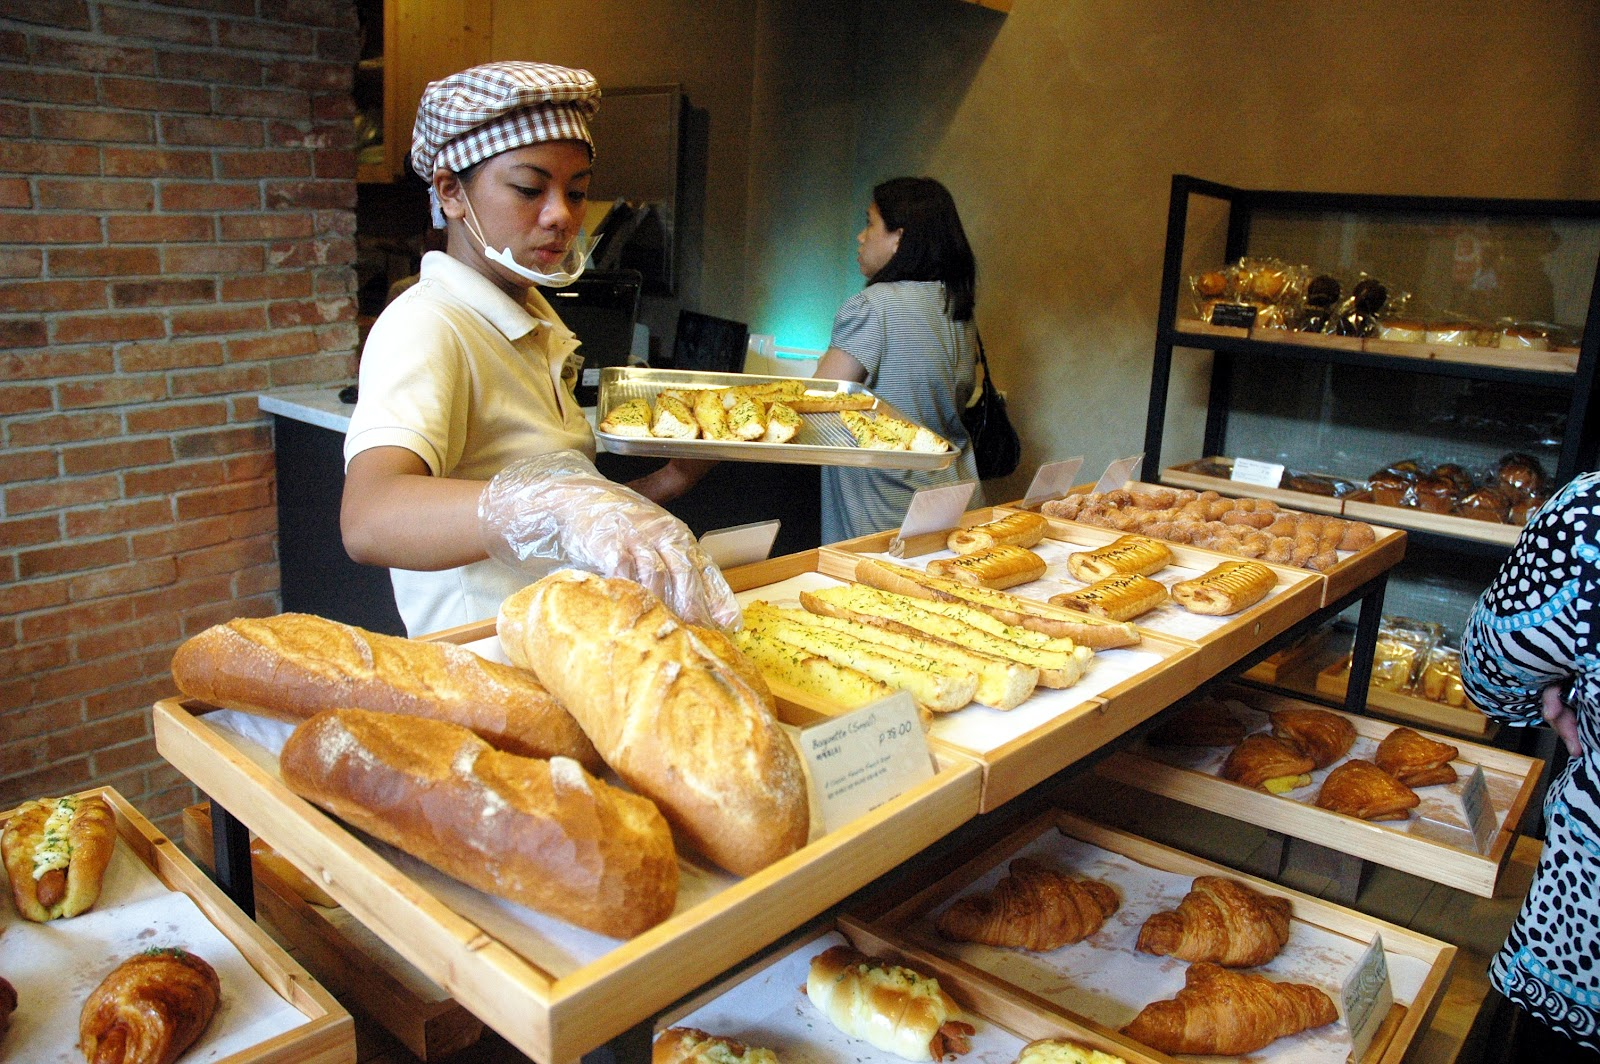 Image of a bakery sales clerk putting breads on display